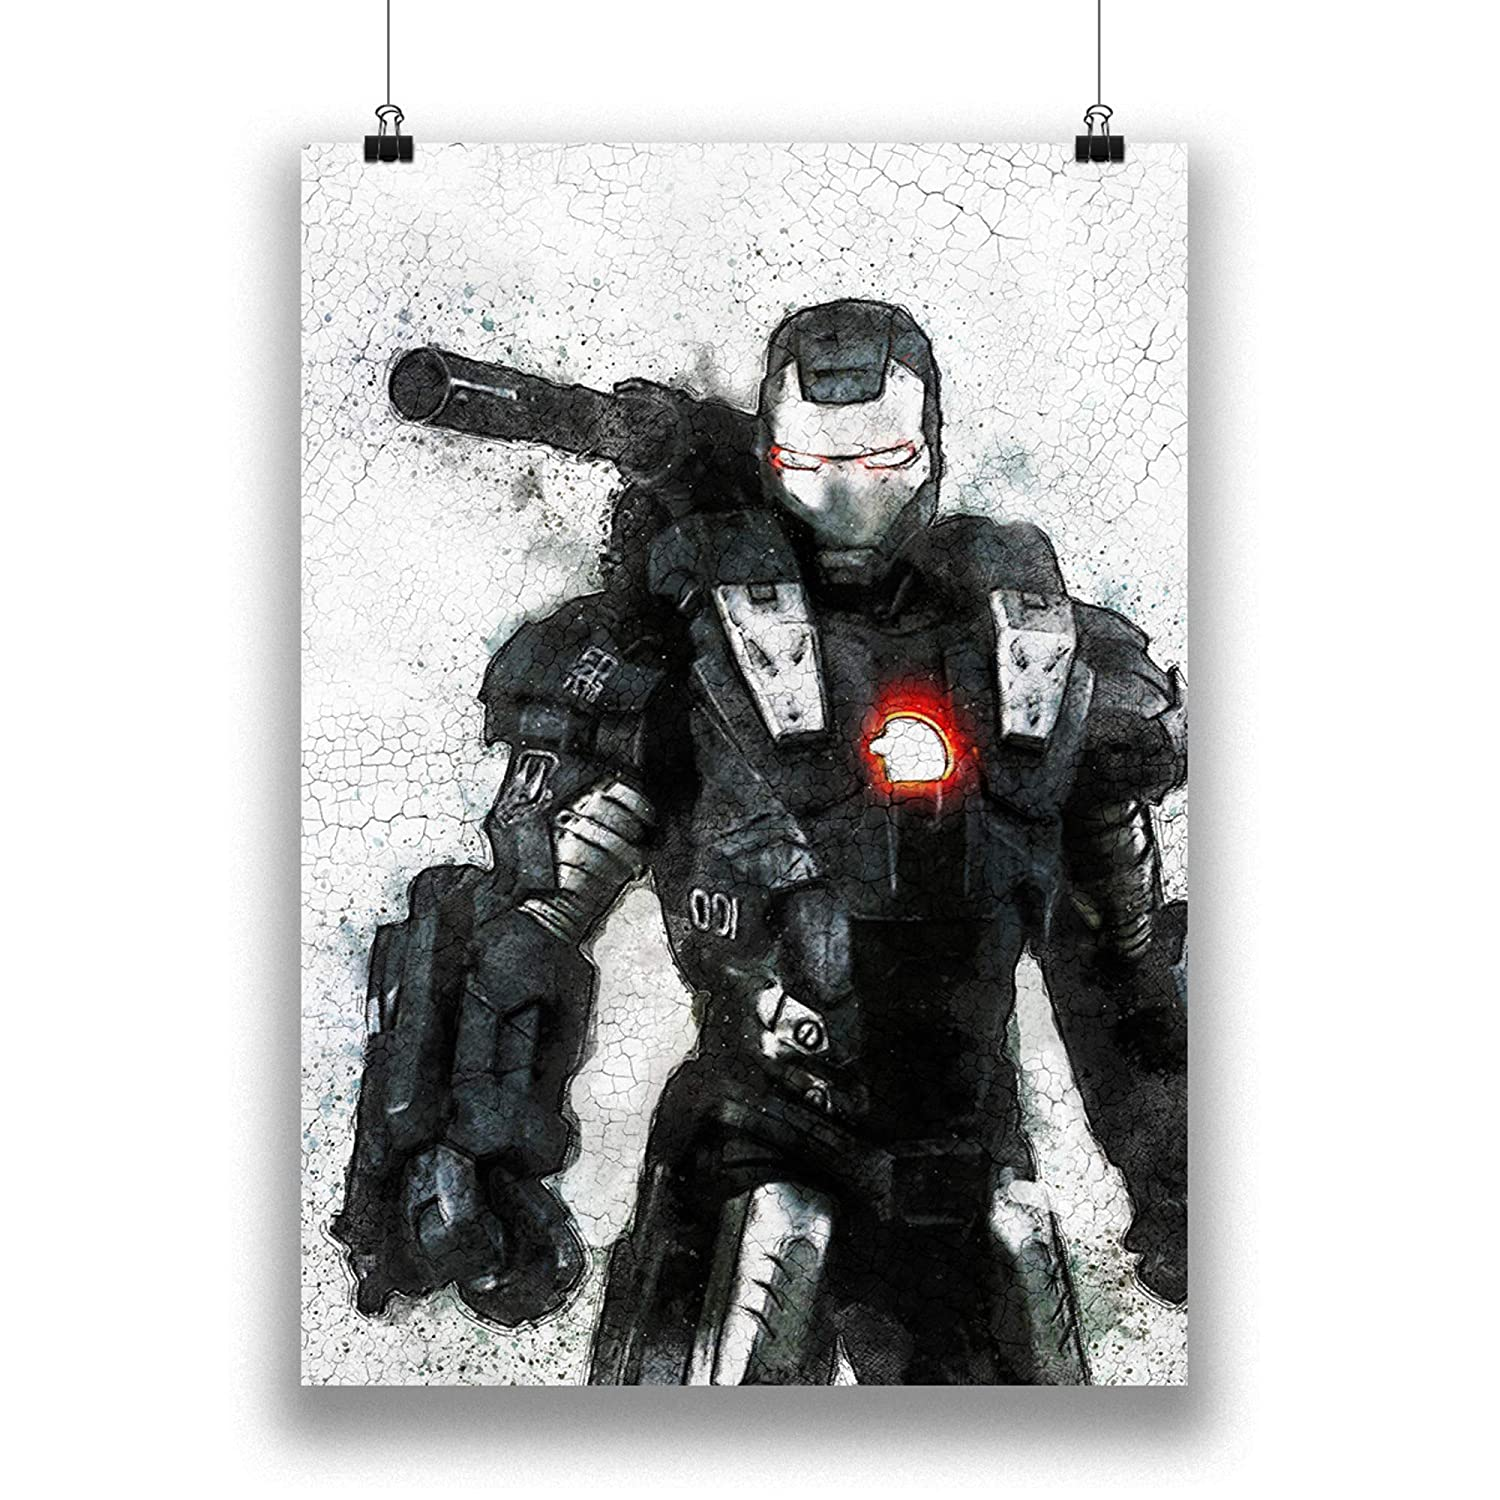 Marvel Avengers War Machine Art Print Jim Rhodes Endgame Superhero Poster on 100/% Cotton Paper Iron Man Abstract Movie Poster